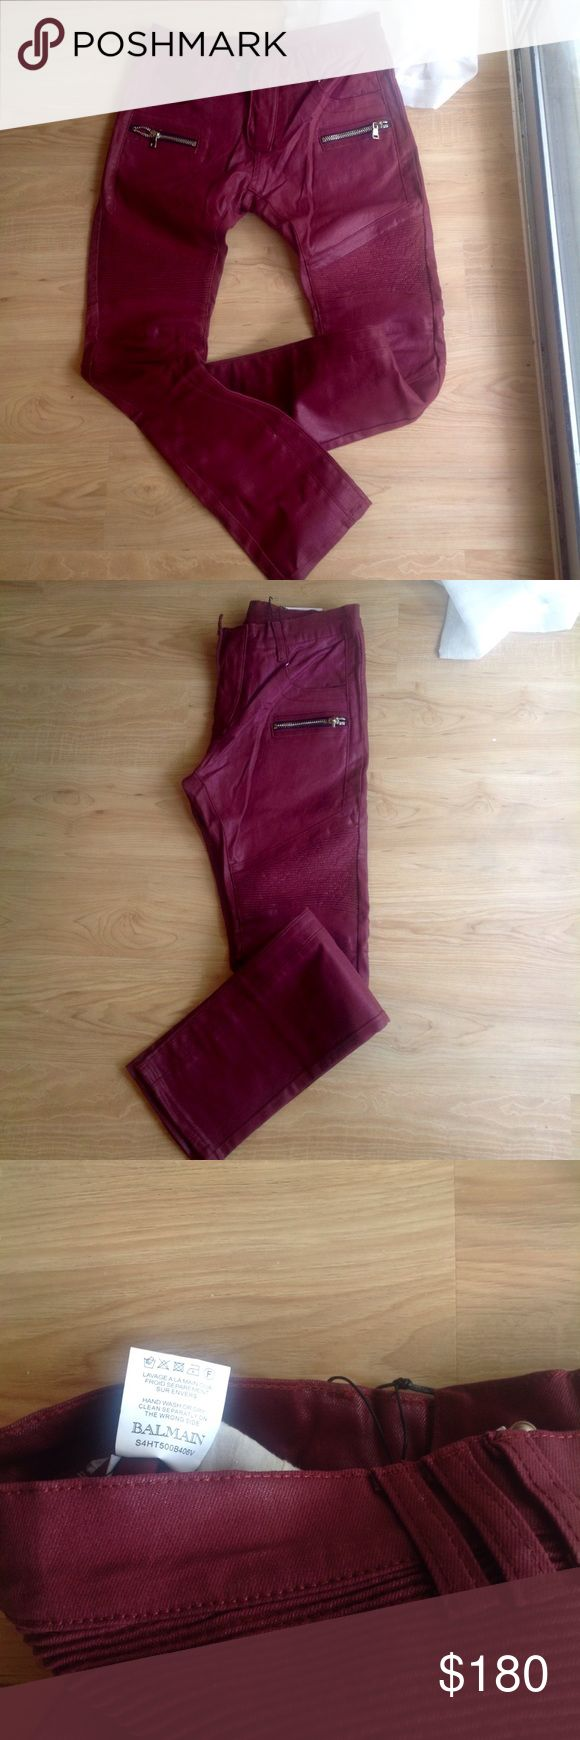 Balmain Jean Size men 32 skinny waxed stretch jeans burgundy color Balmain Jeans Skinny